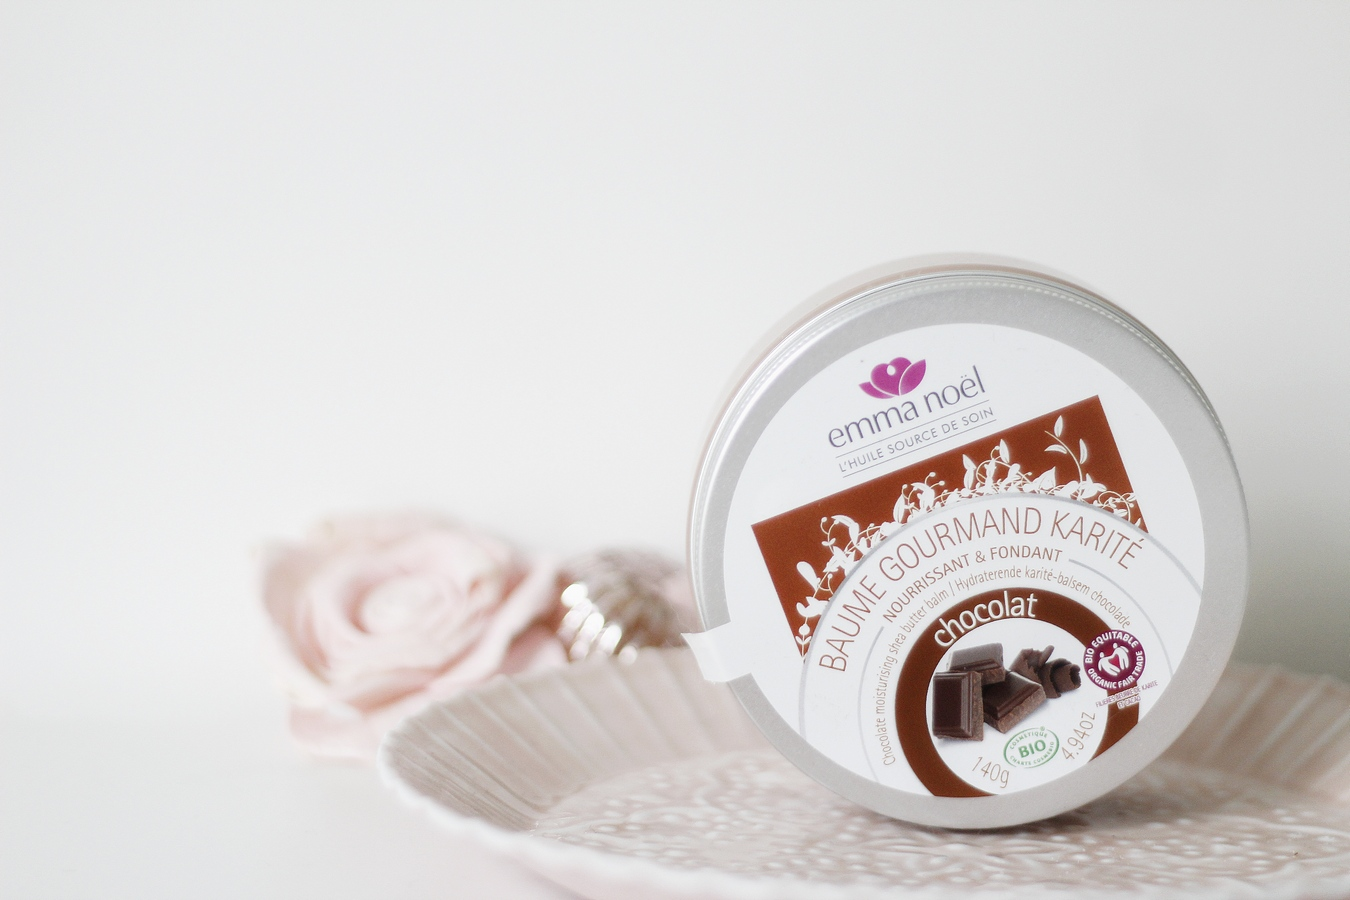 mignonneries du style madame baume gourmand emma noel chocolat